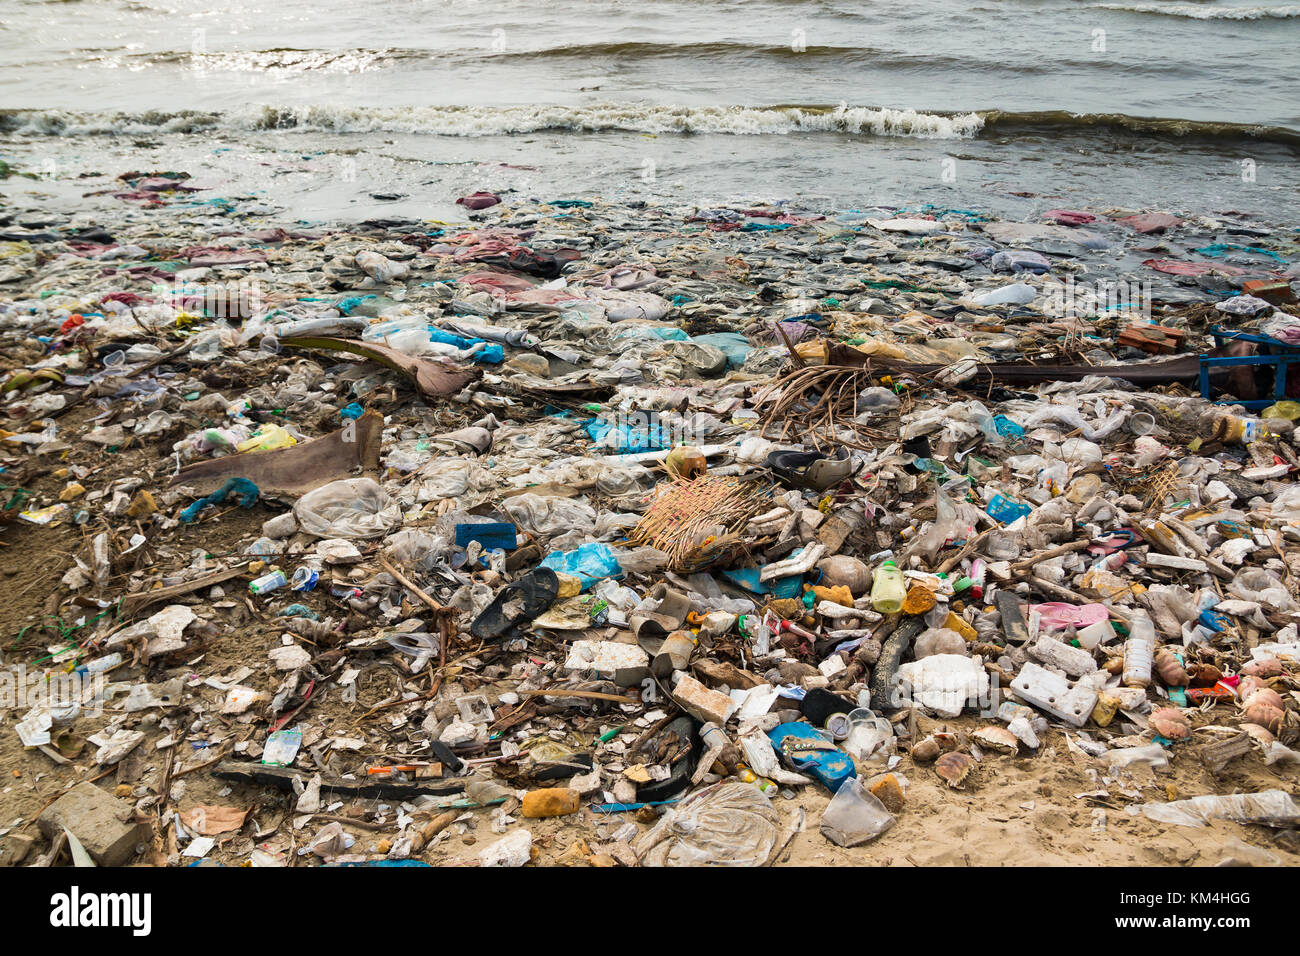 Polluted beach in a fishing village in Vietnam, environmental pollution concept - Stock Image